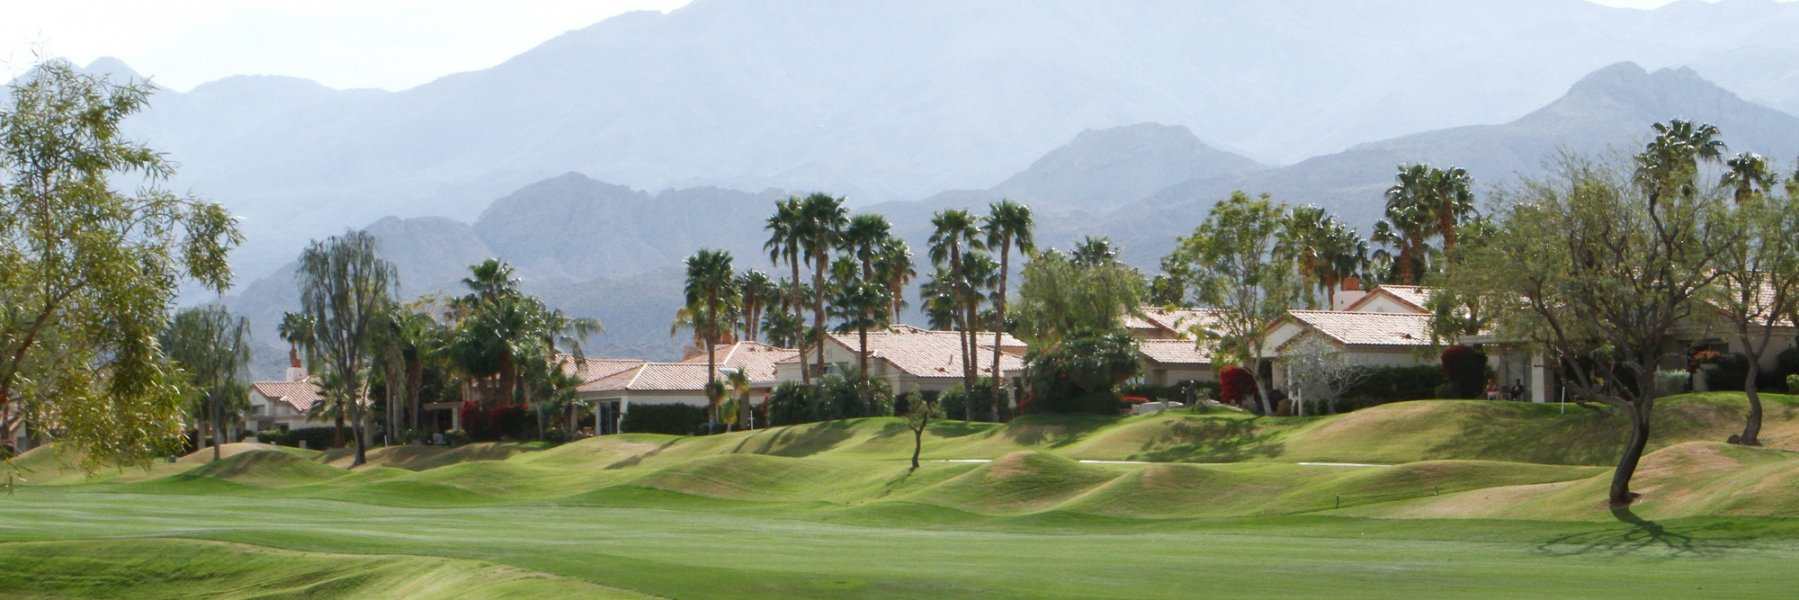 PGA West Weiskopf is a community of homes in La Quinta California